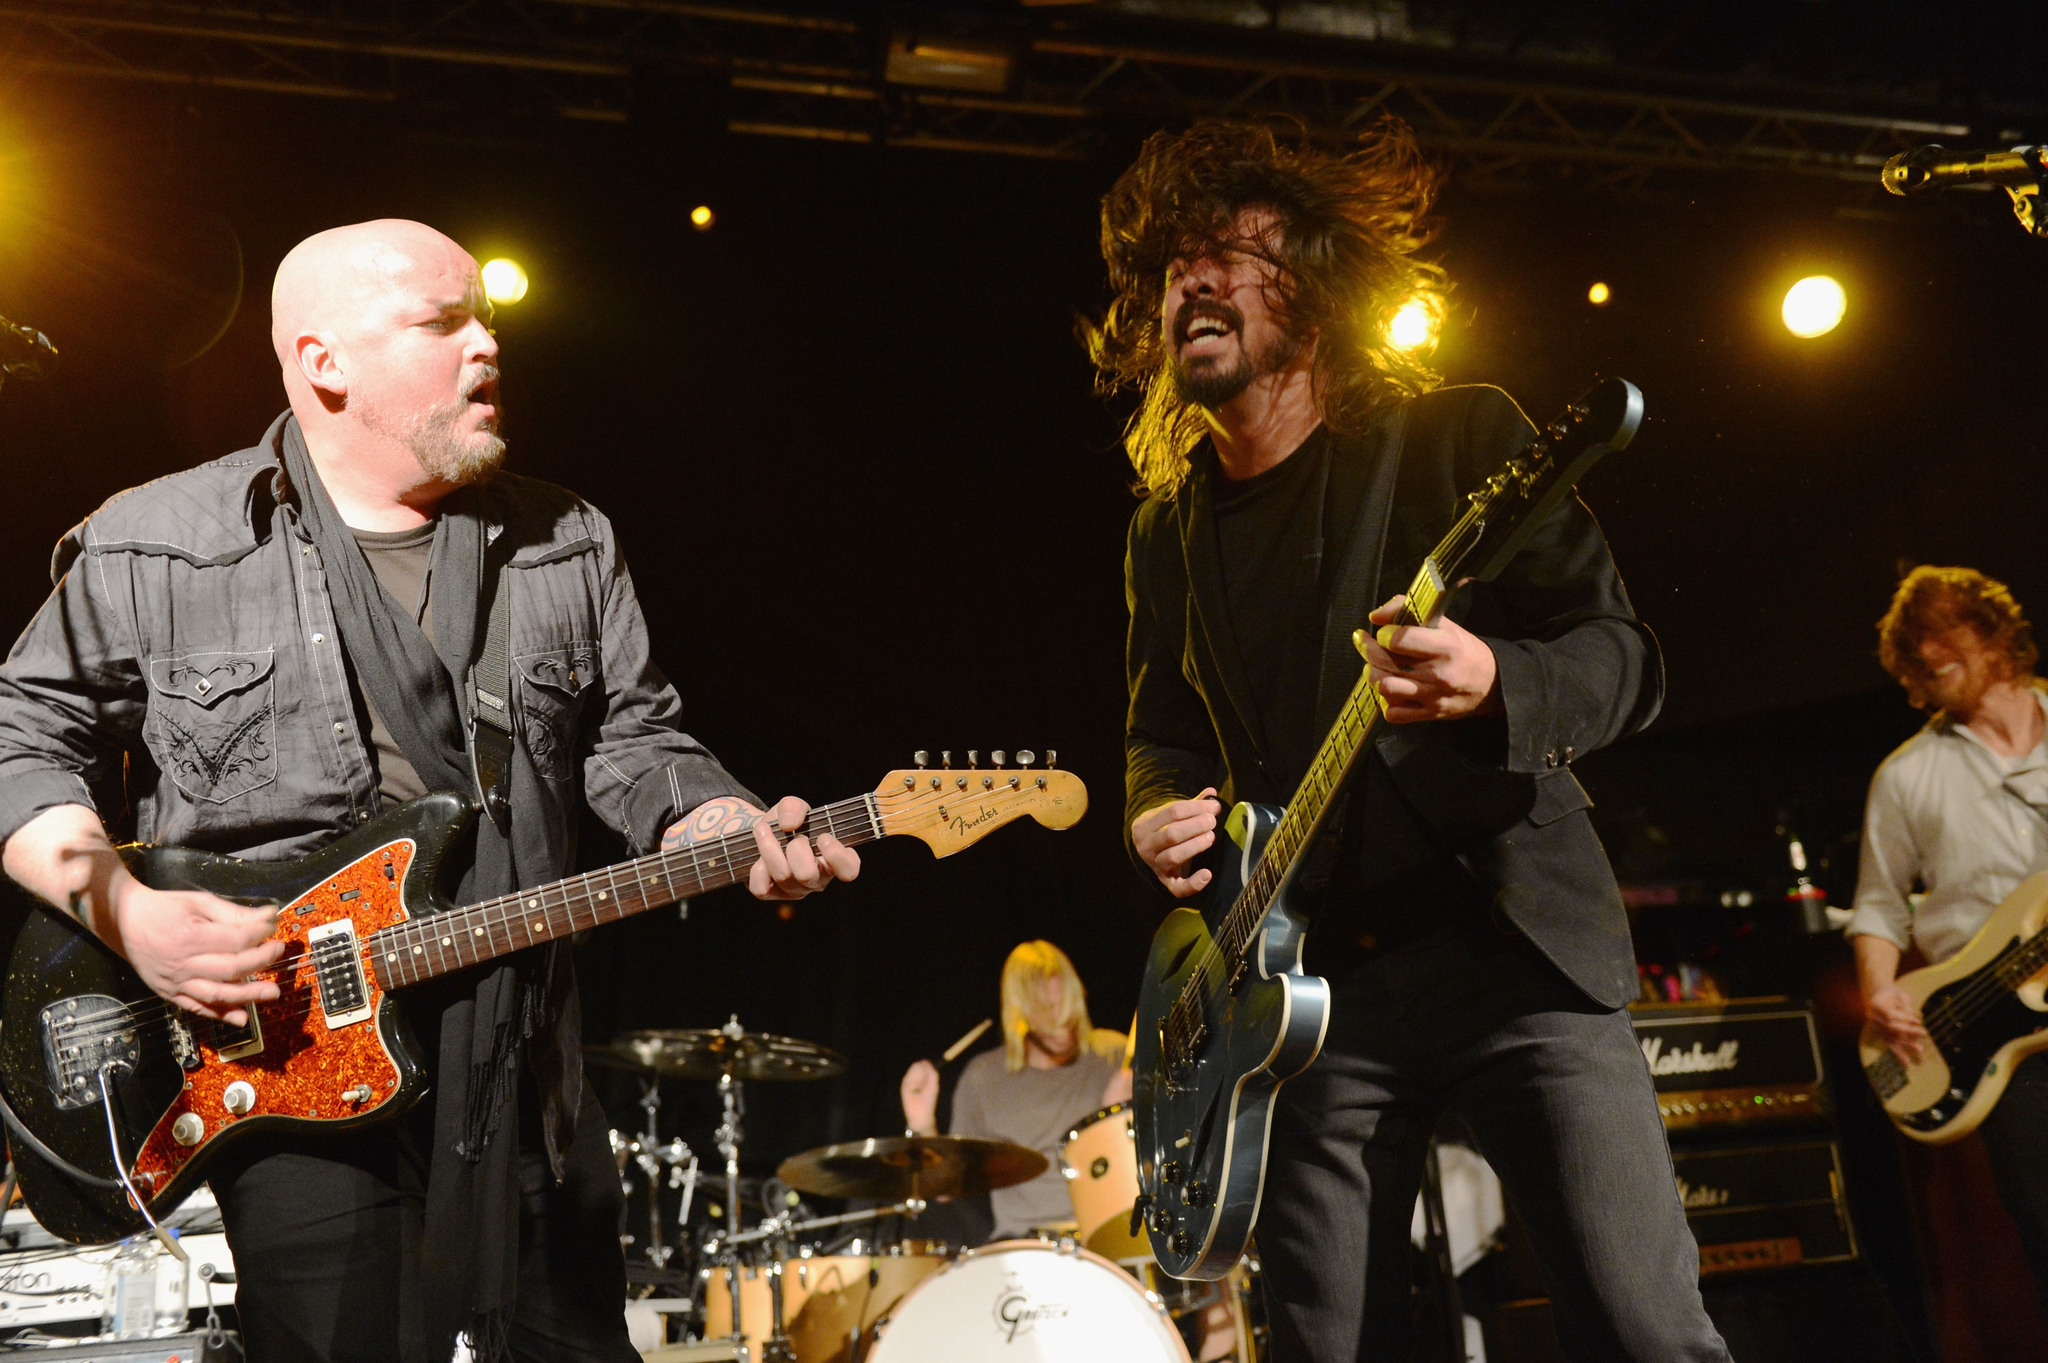 Dave Grohl and Alain Johannes